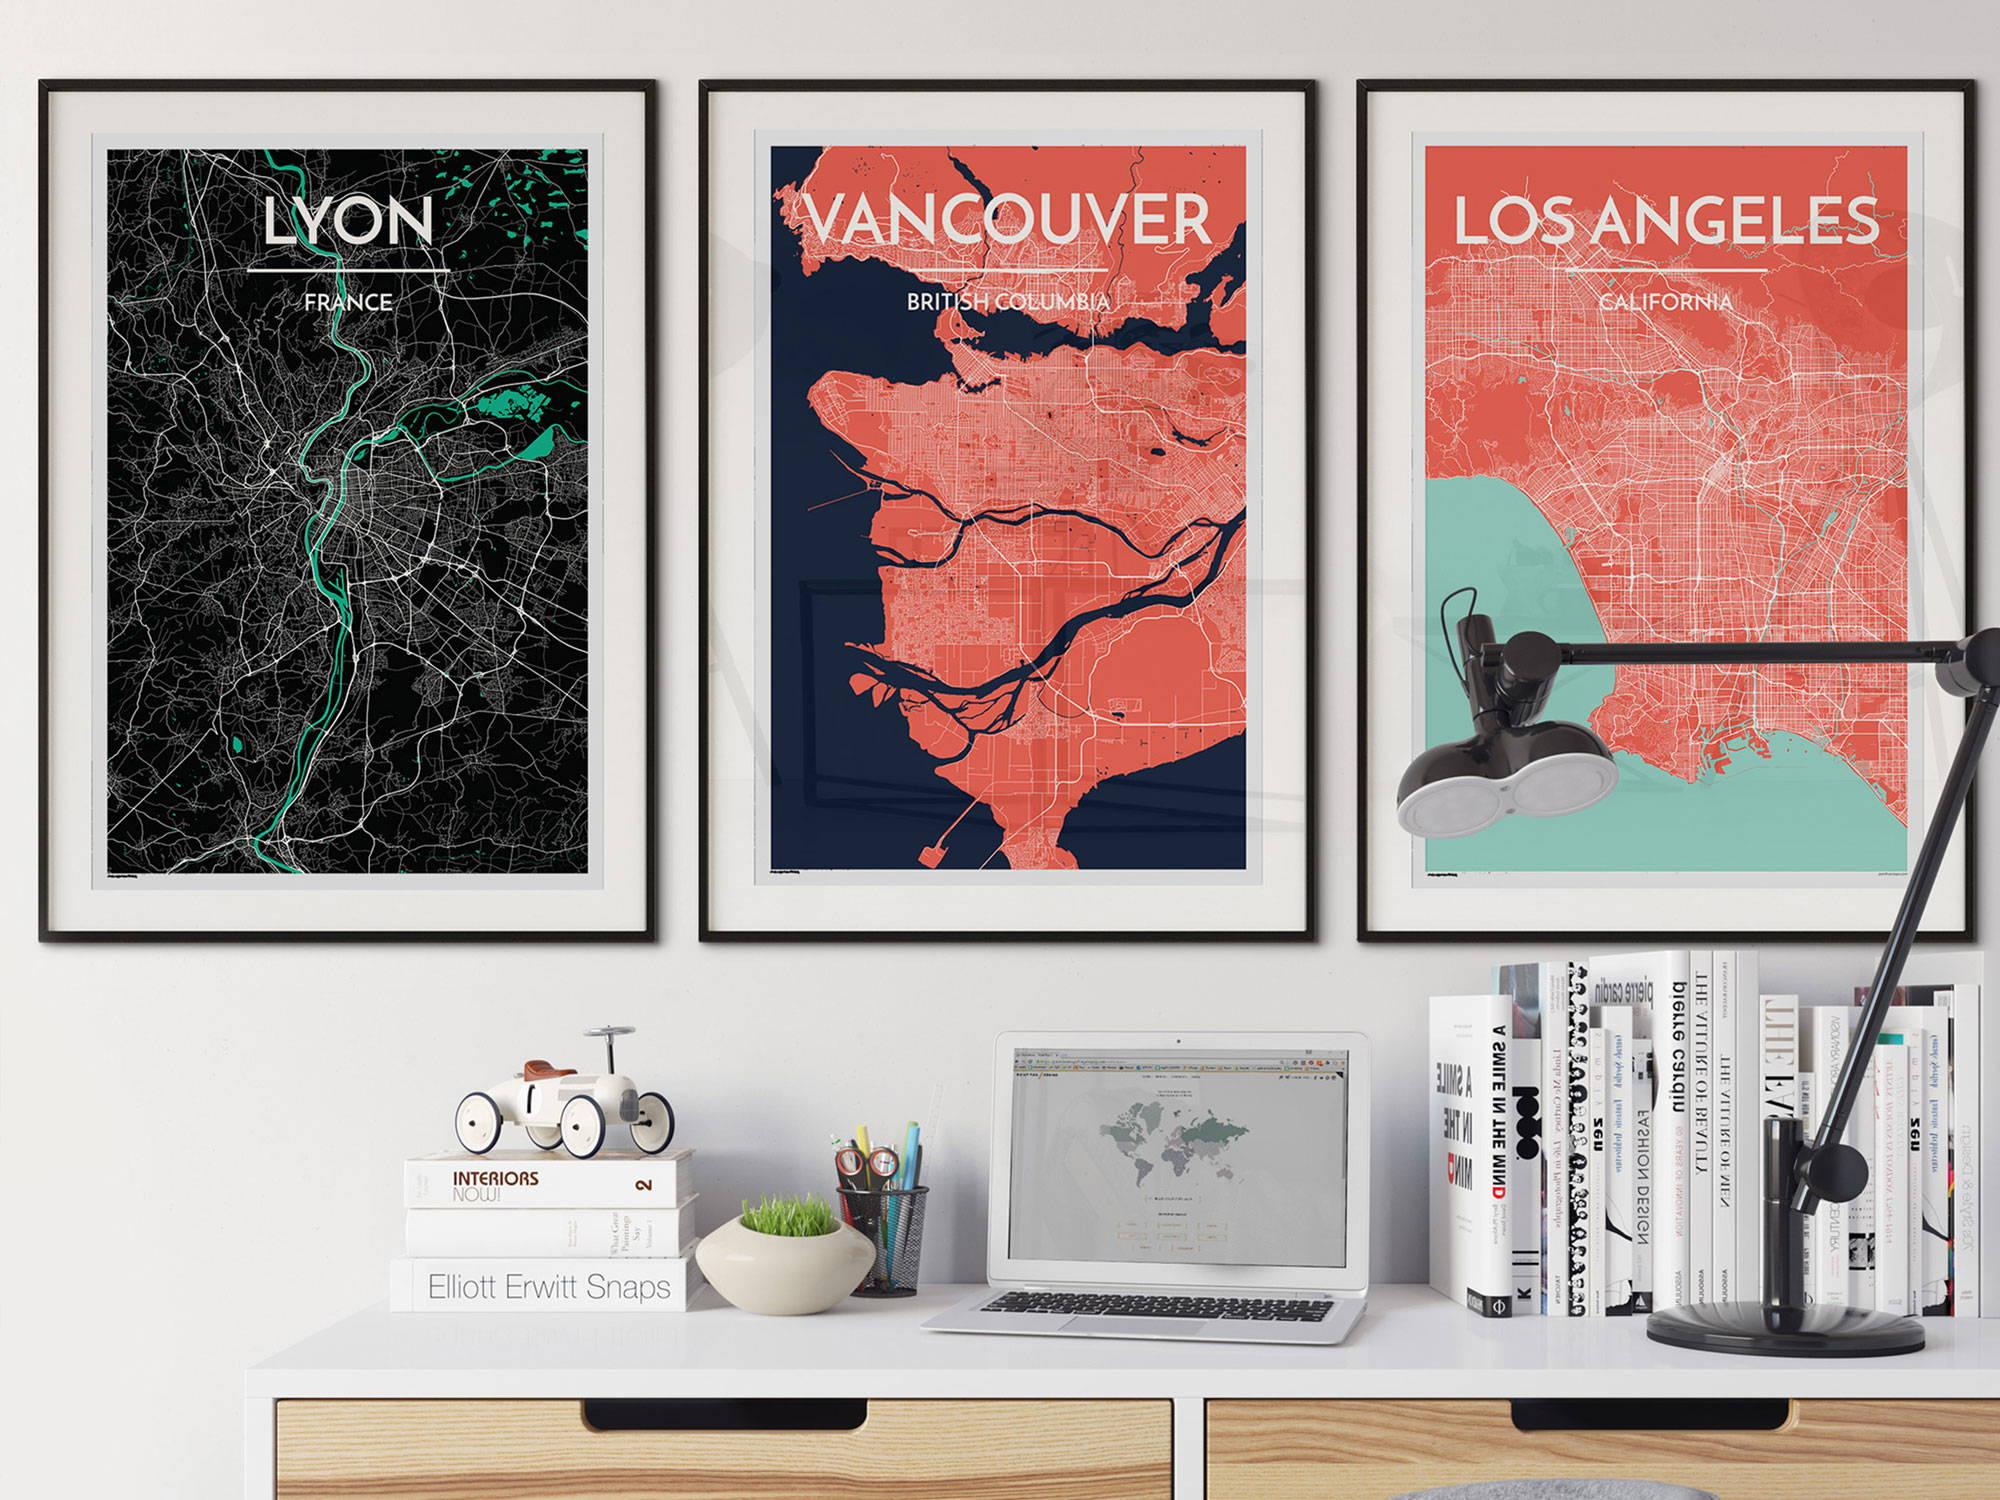 City Map Art Print of Lyon Vancouver and Los Angeles